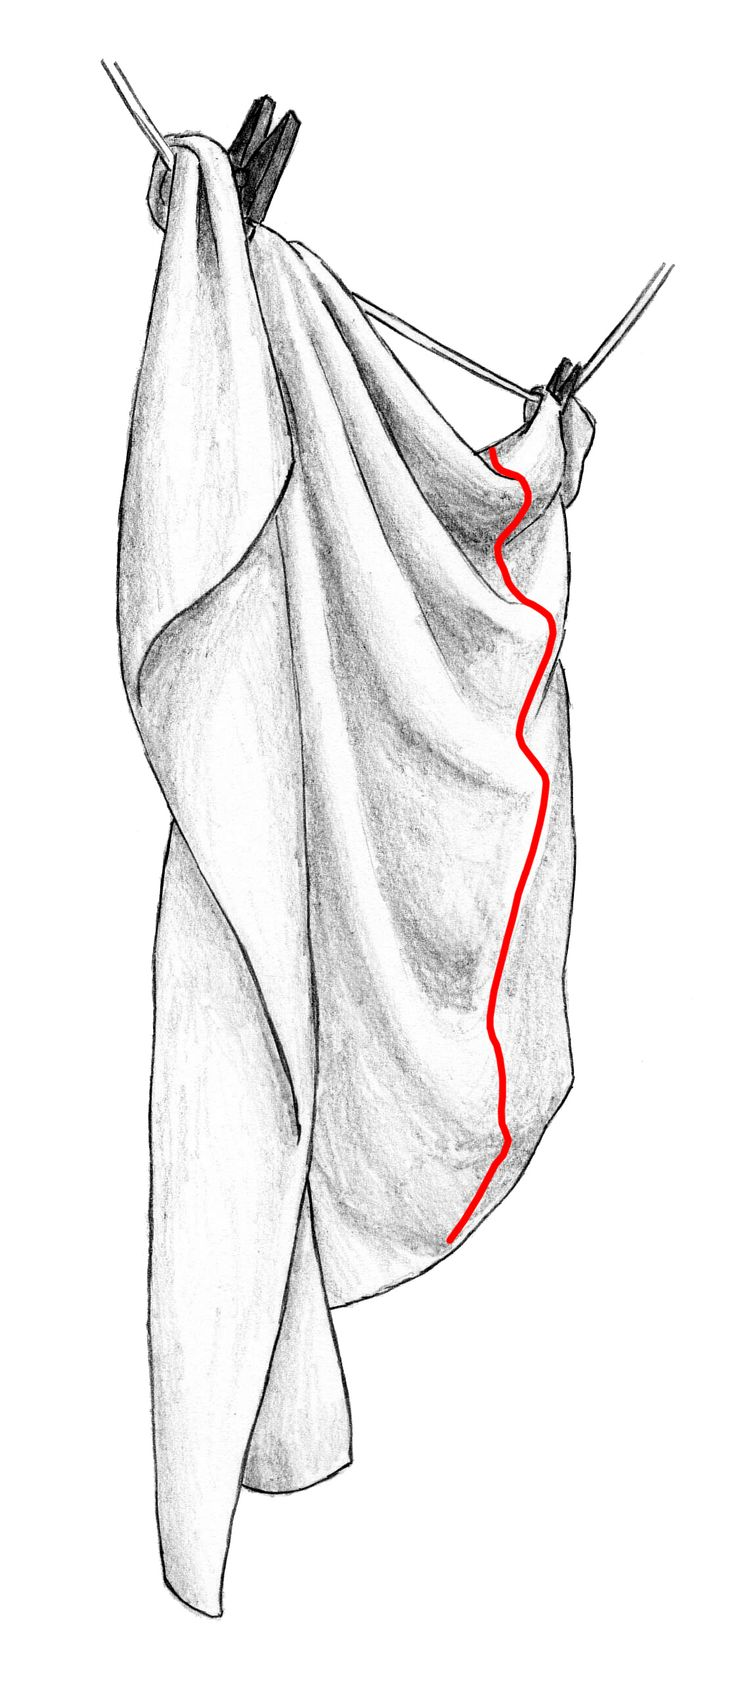 Here is how to draw a DIAPER FOLD from side view. Notice the interesting shape of the curves and folds! (=  Learn more: https://www.udemy.com/draw-folds-clothes/?couponCode=FLLFIRST